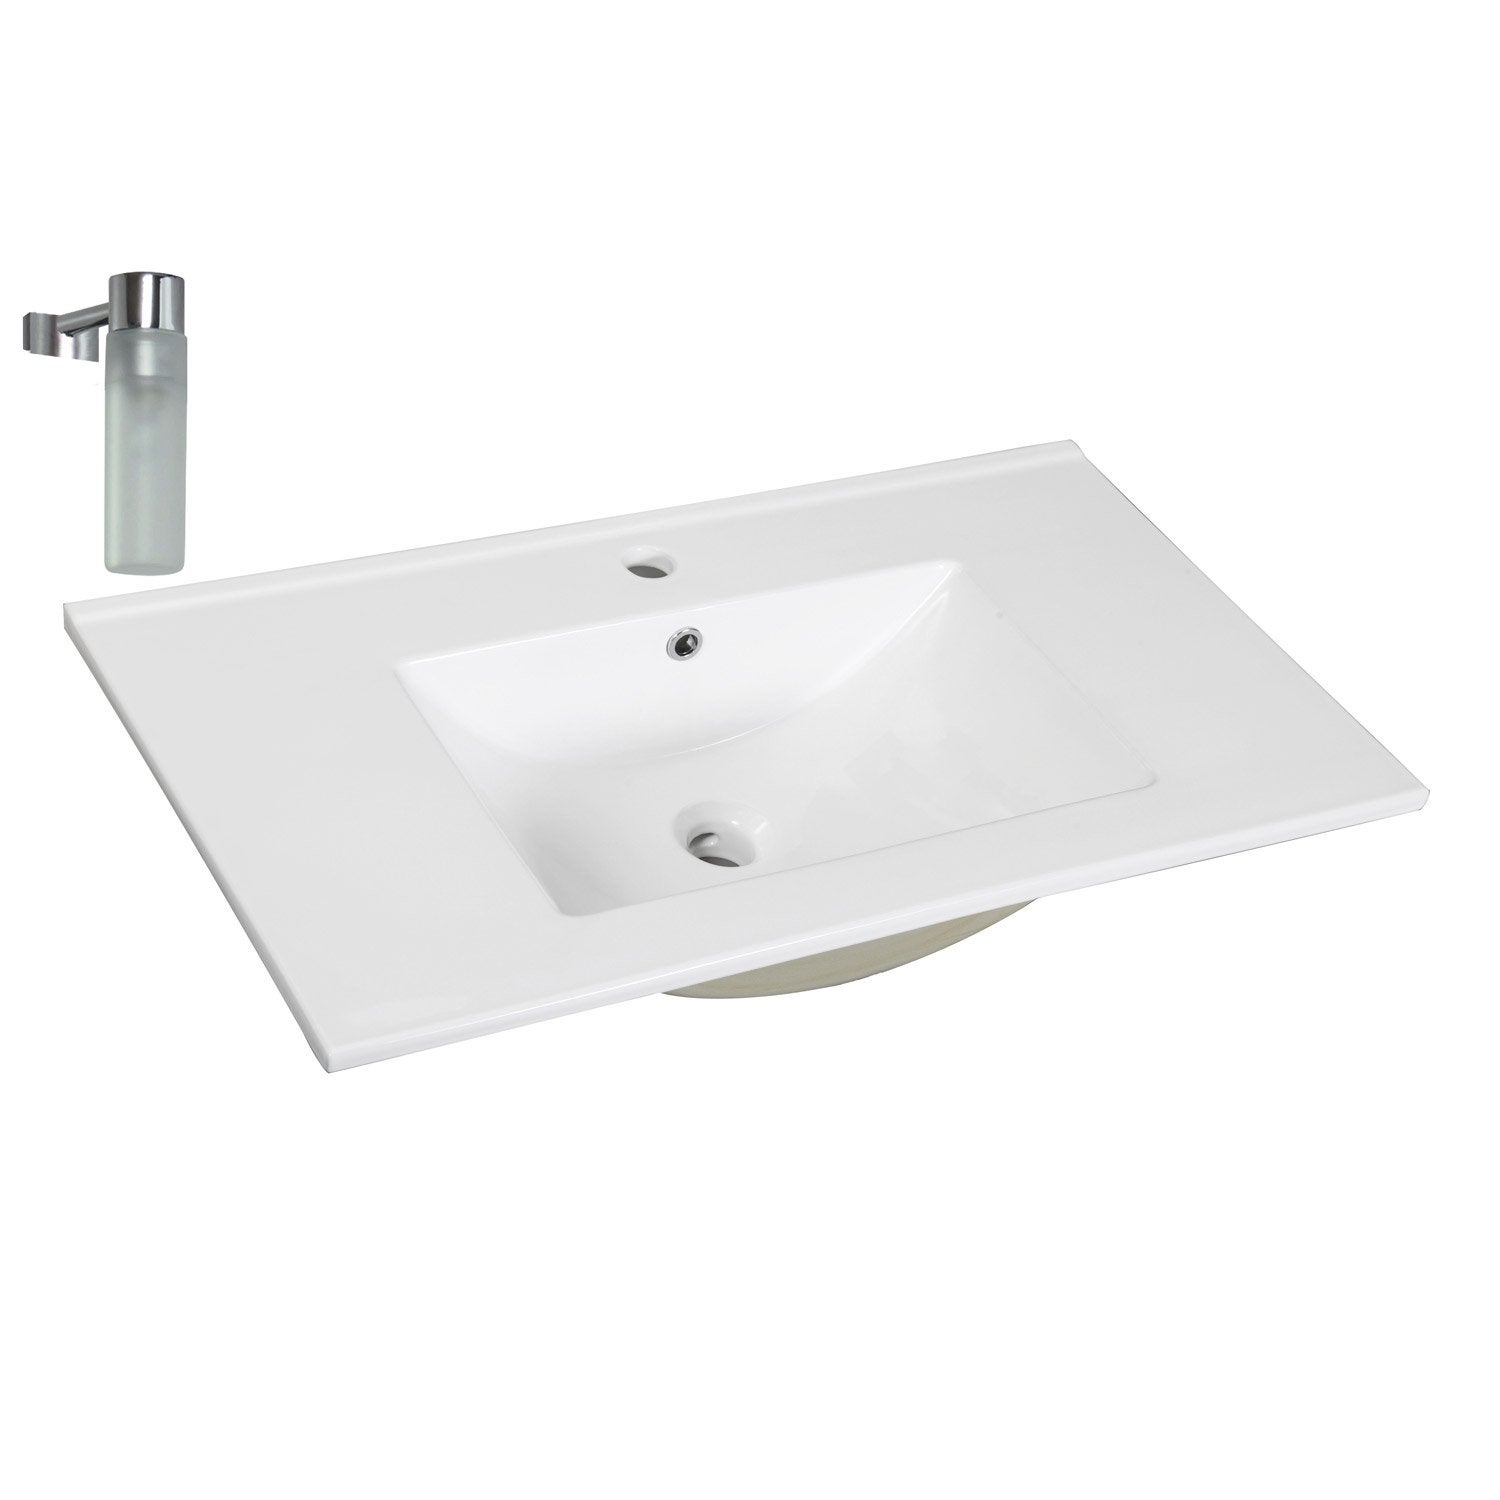 Plan vasque simple dado c ramique 61 cm leroy merlin for Enceinte encastrable salle de bain